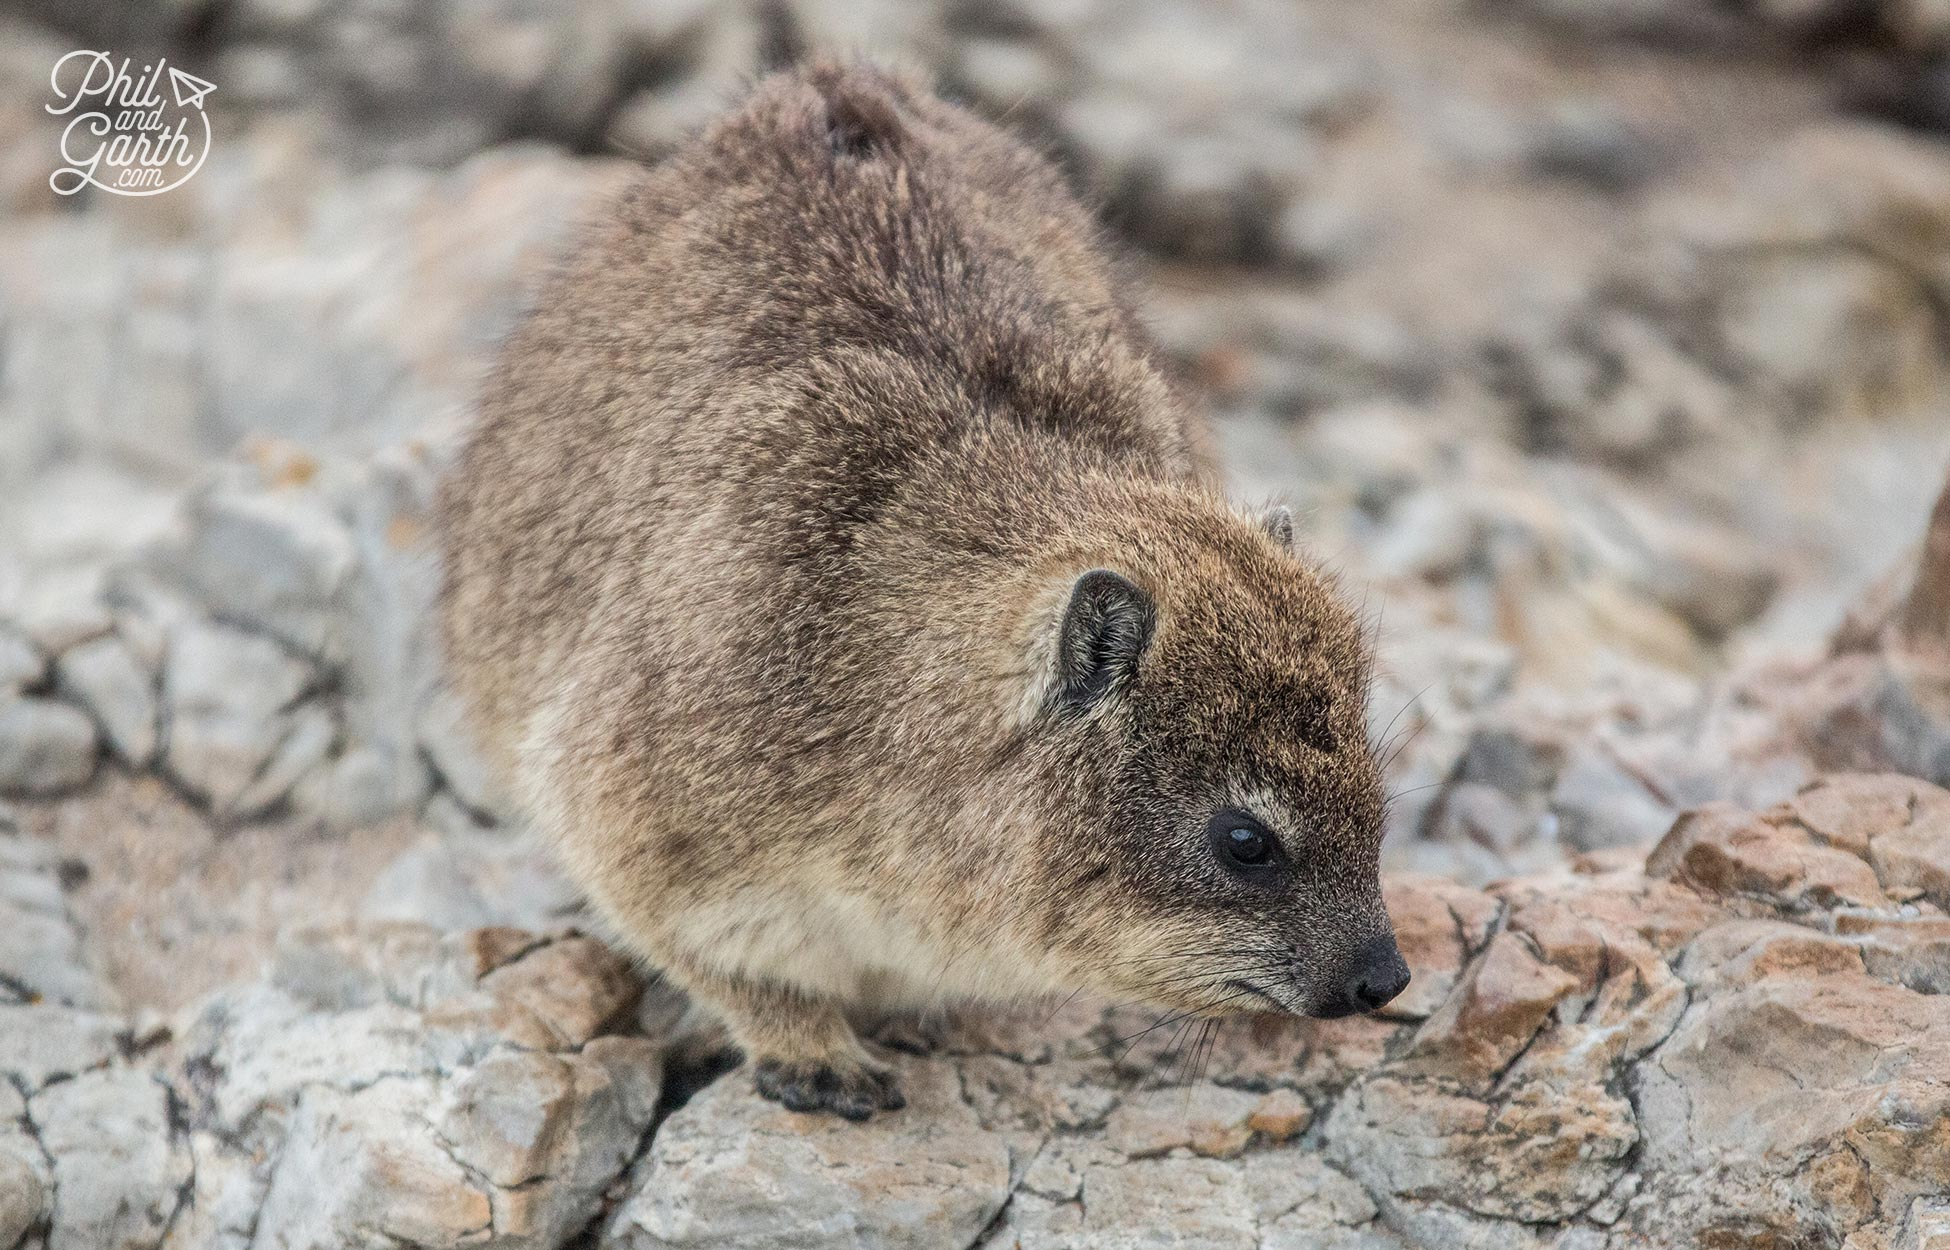 We saw dozens of these guys - Rock Dassies on the cliff